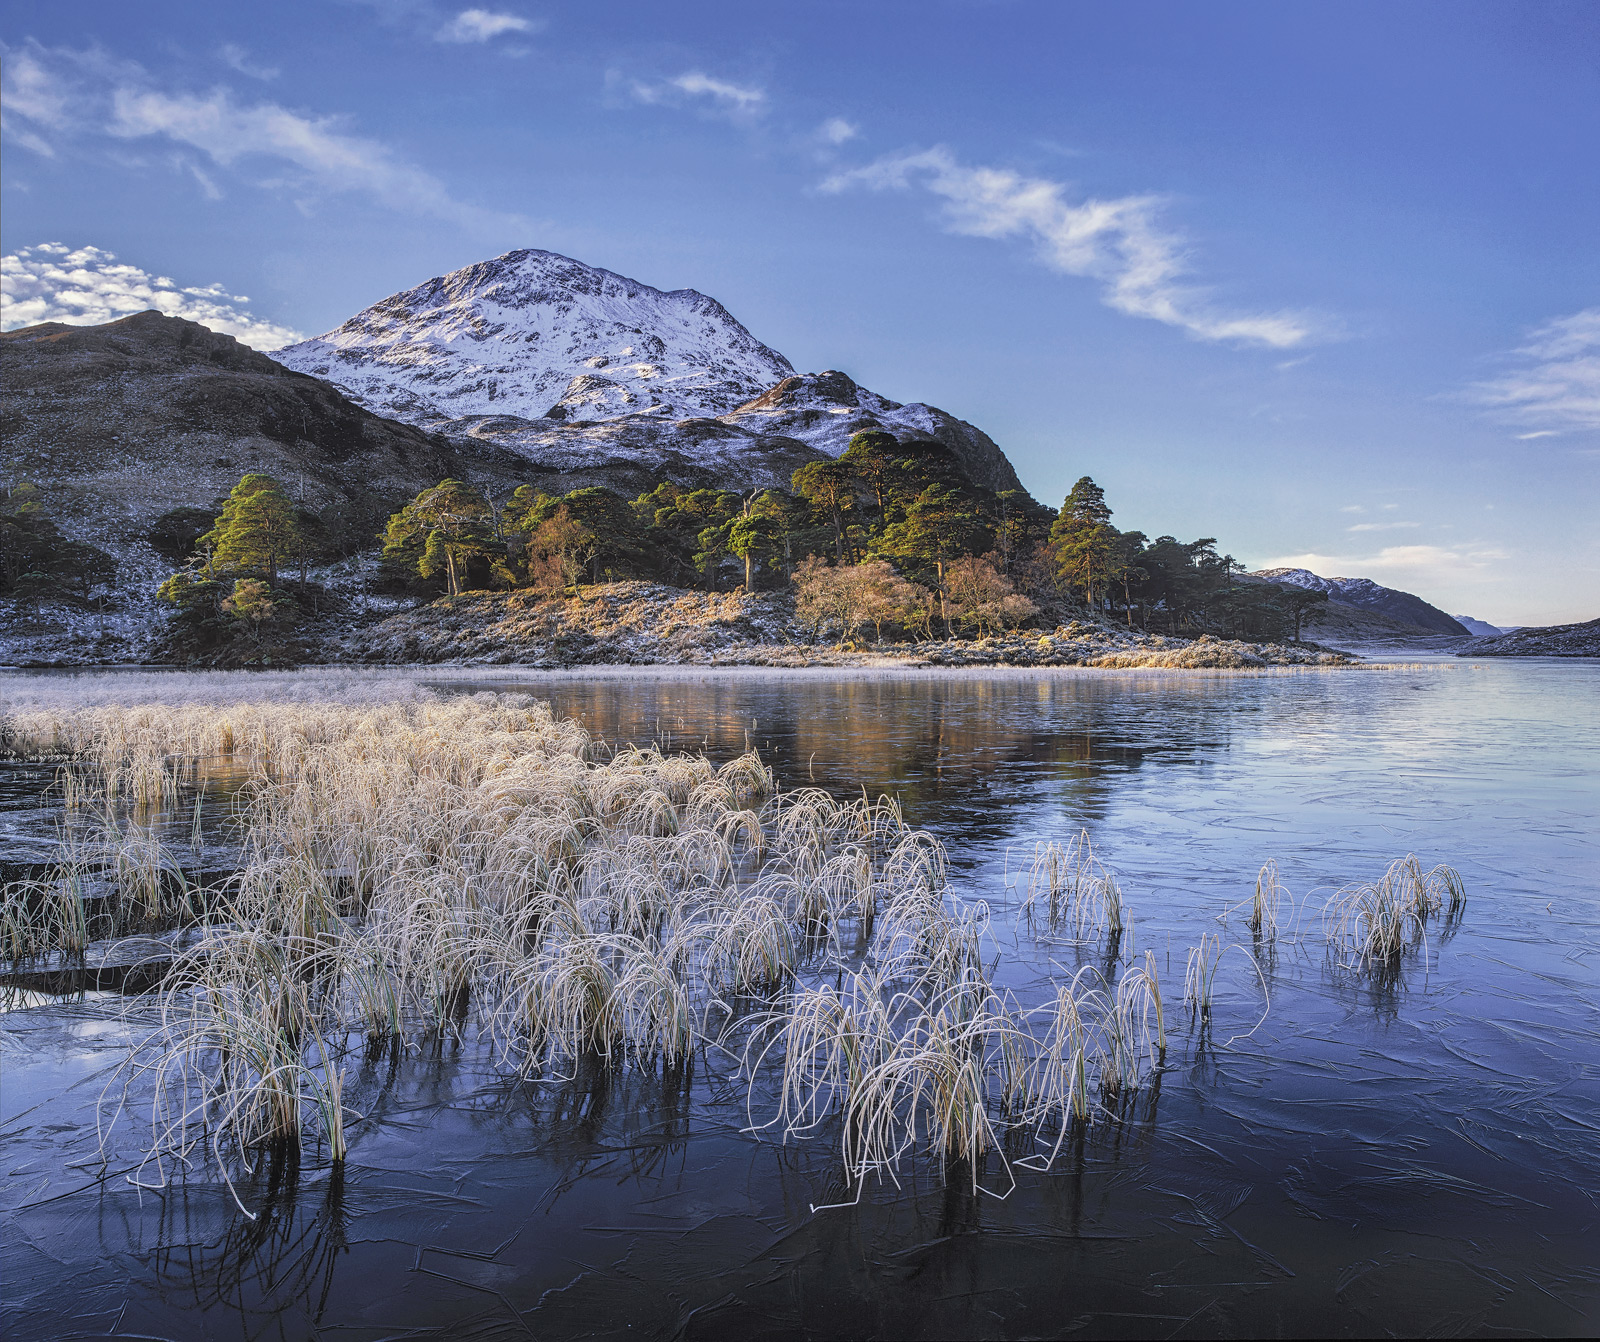 Winter Blues Loch Clair, Loch Clair, Torridon, Scotland, sunrise, coldest, air, cooling, ice, reeds, hoar frost, stems, photo